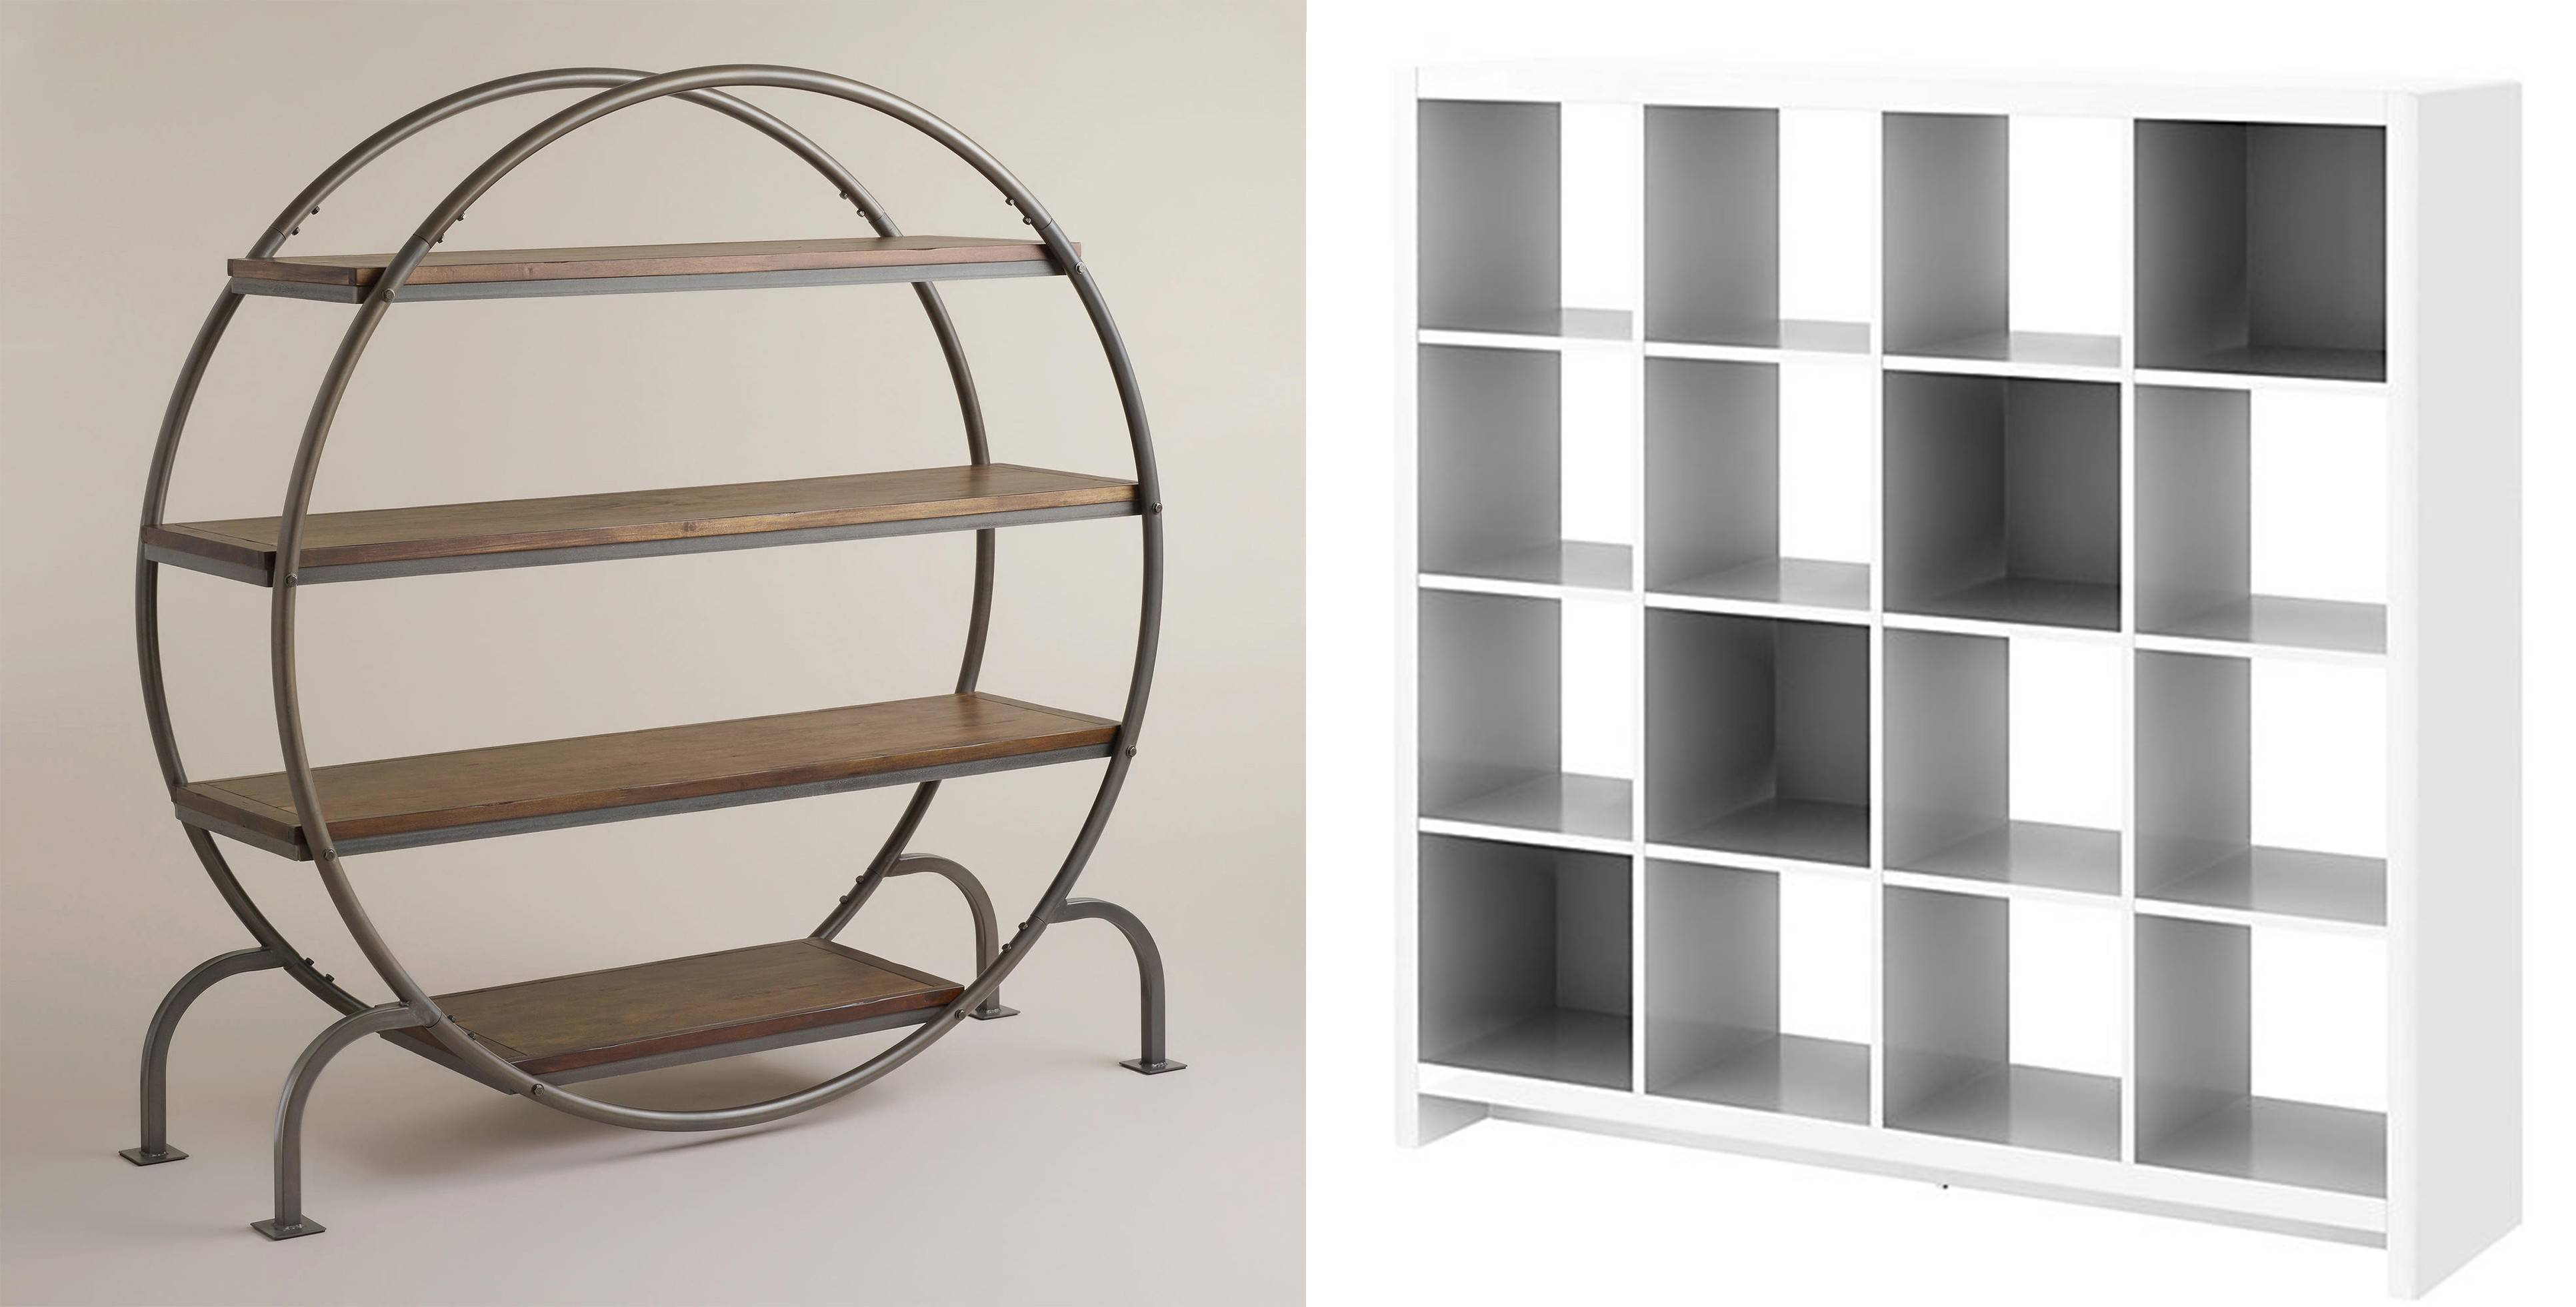 World Market's Round Bookcase, left, has an open, industrial look. At right, Kathy Ireland's New York Skyline shelving unit.